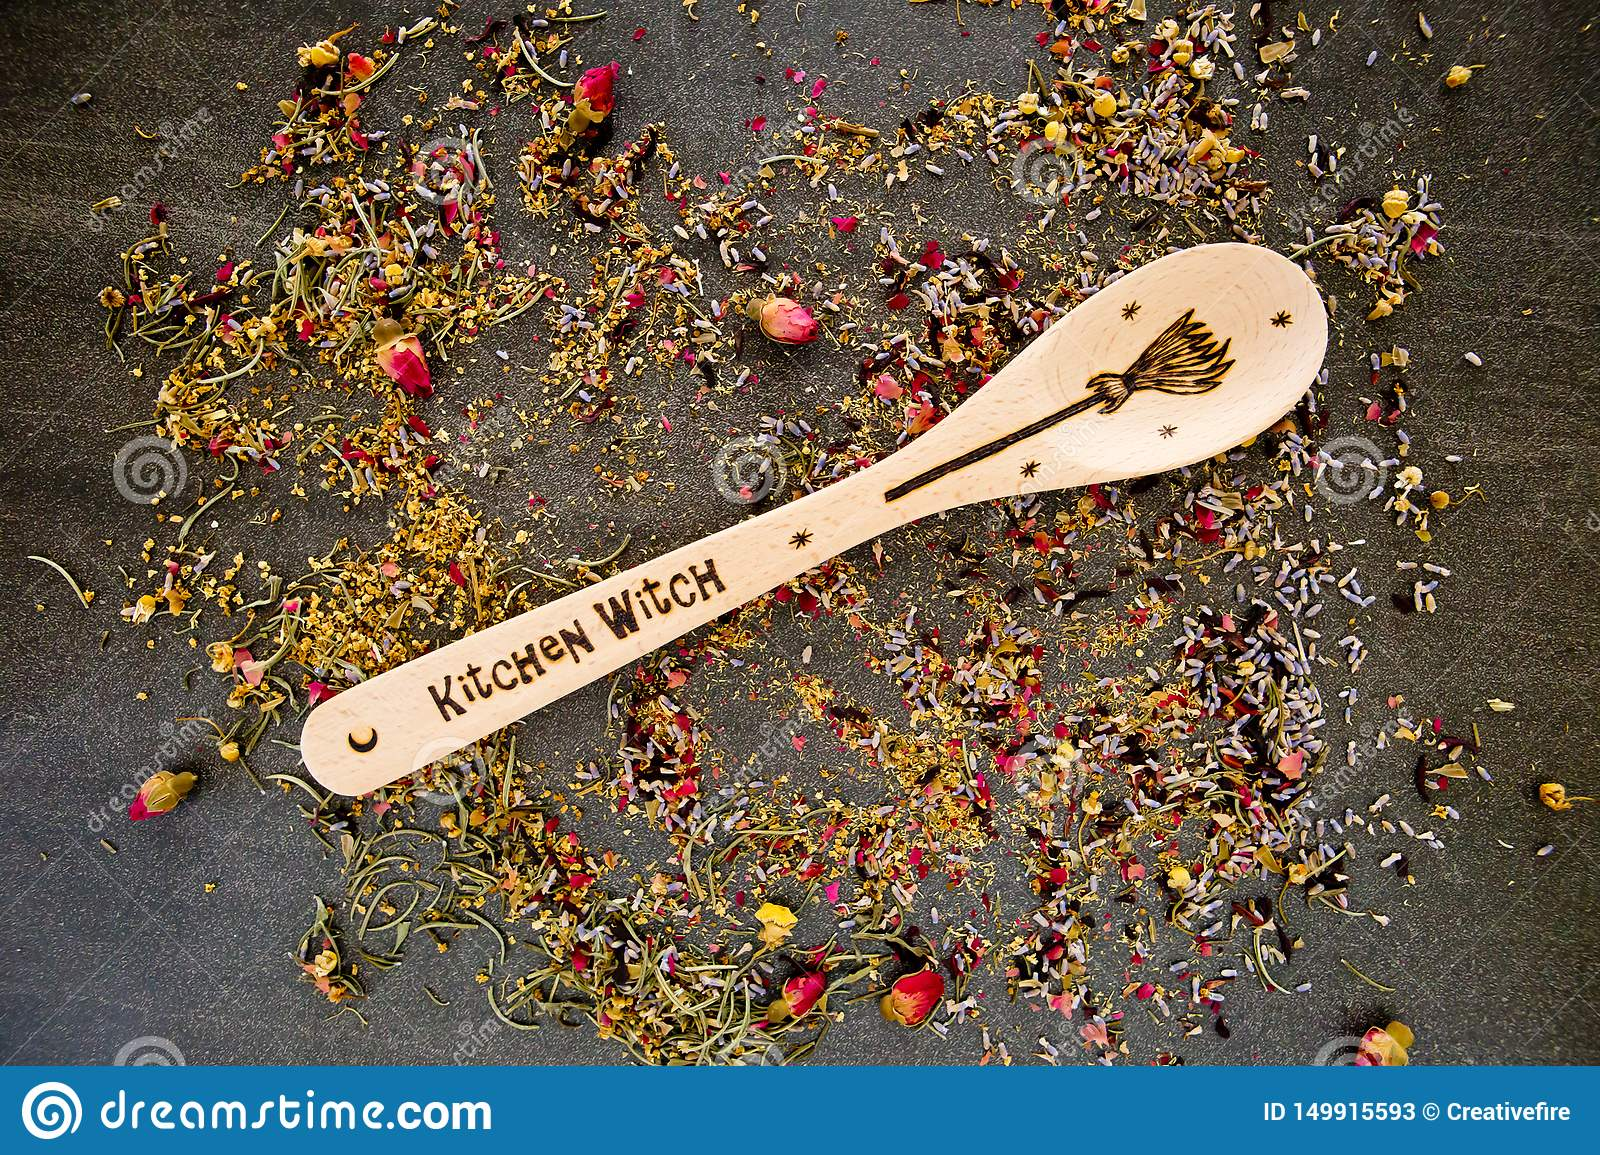 Kitchen Witch Spoon With Dried Mixed Herbs On Gray Grey Slate Background Stock Image Image Of Ingredient Medicine 149915593